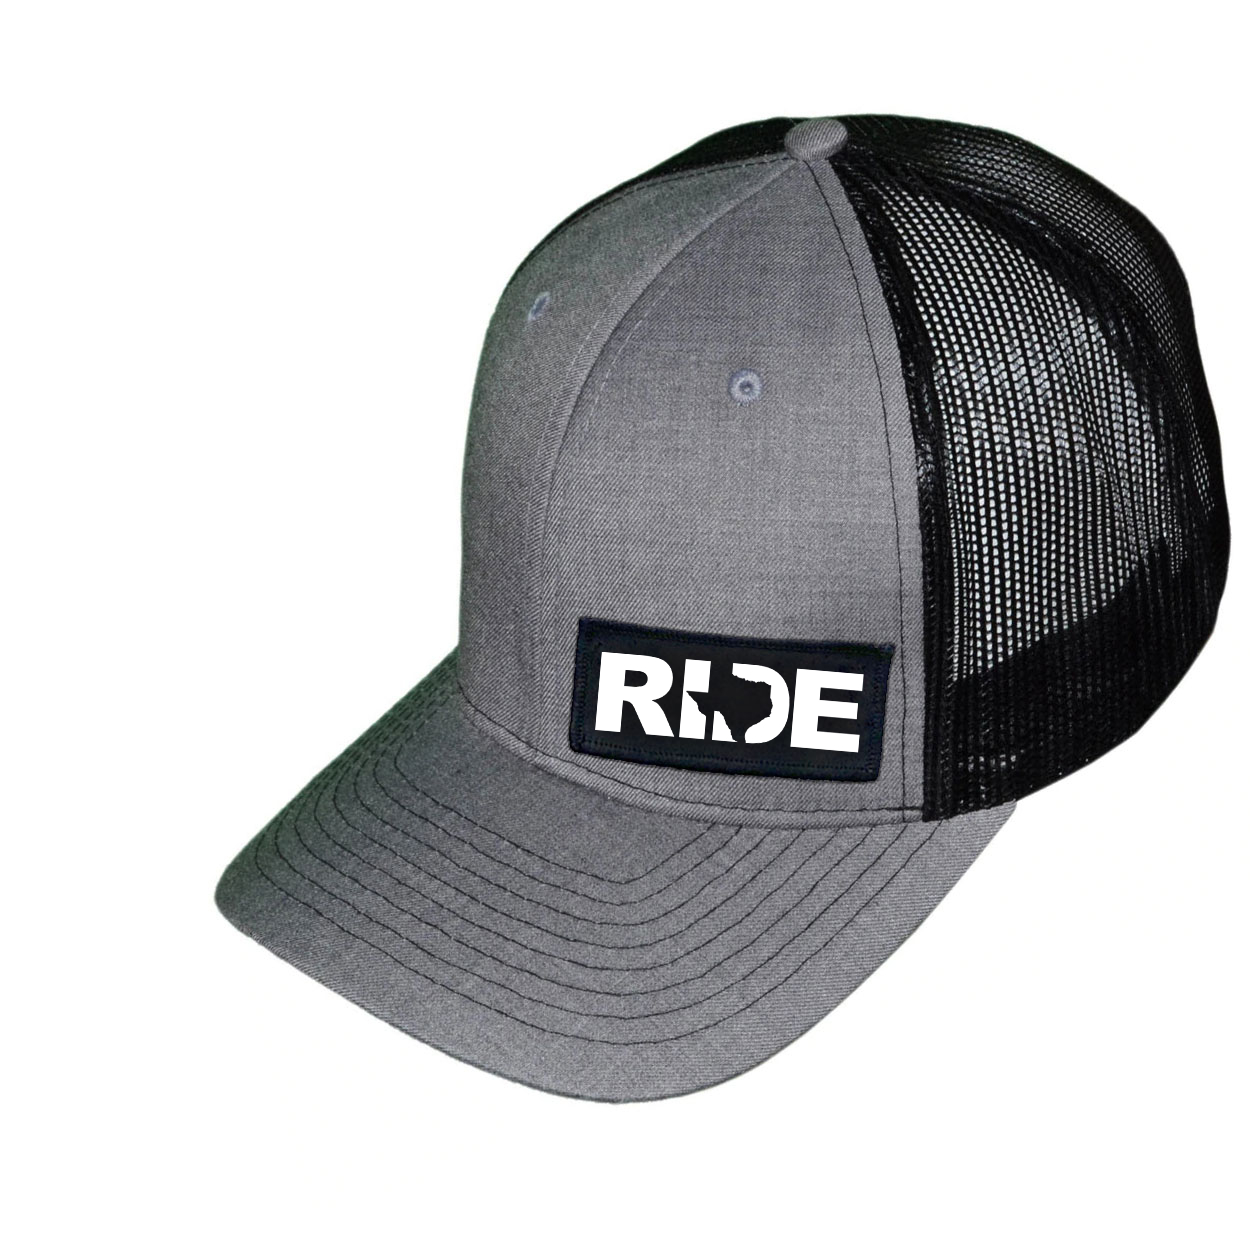 Ride Texas Night Out Woven Patch Snapback Trucker Hat Heather Gray/Black (White Logo)